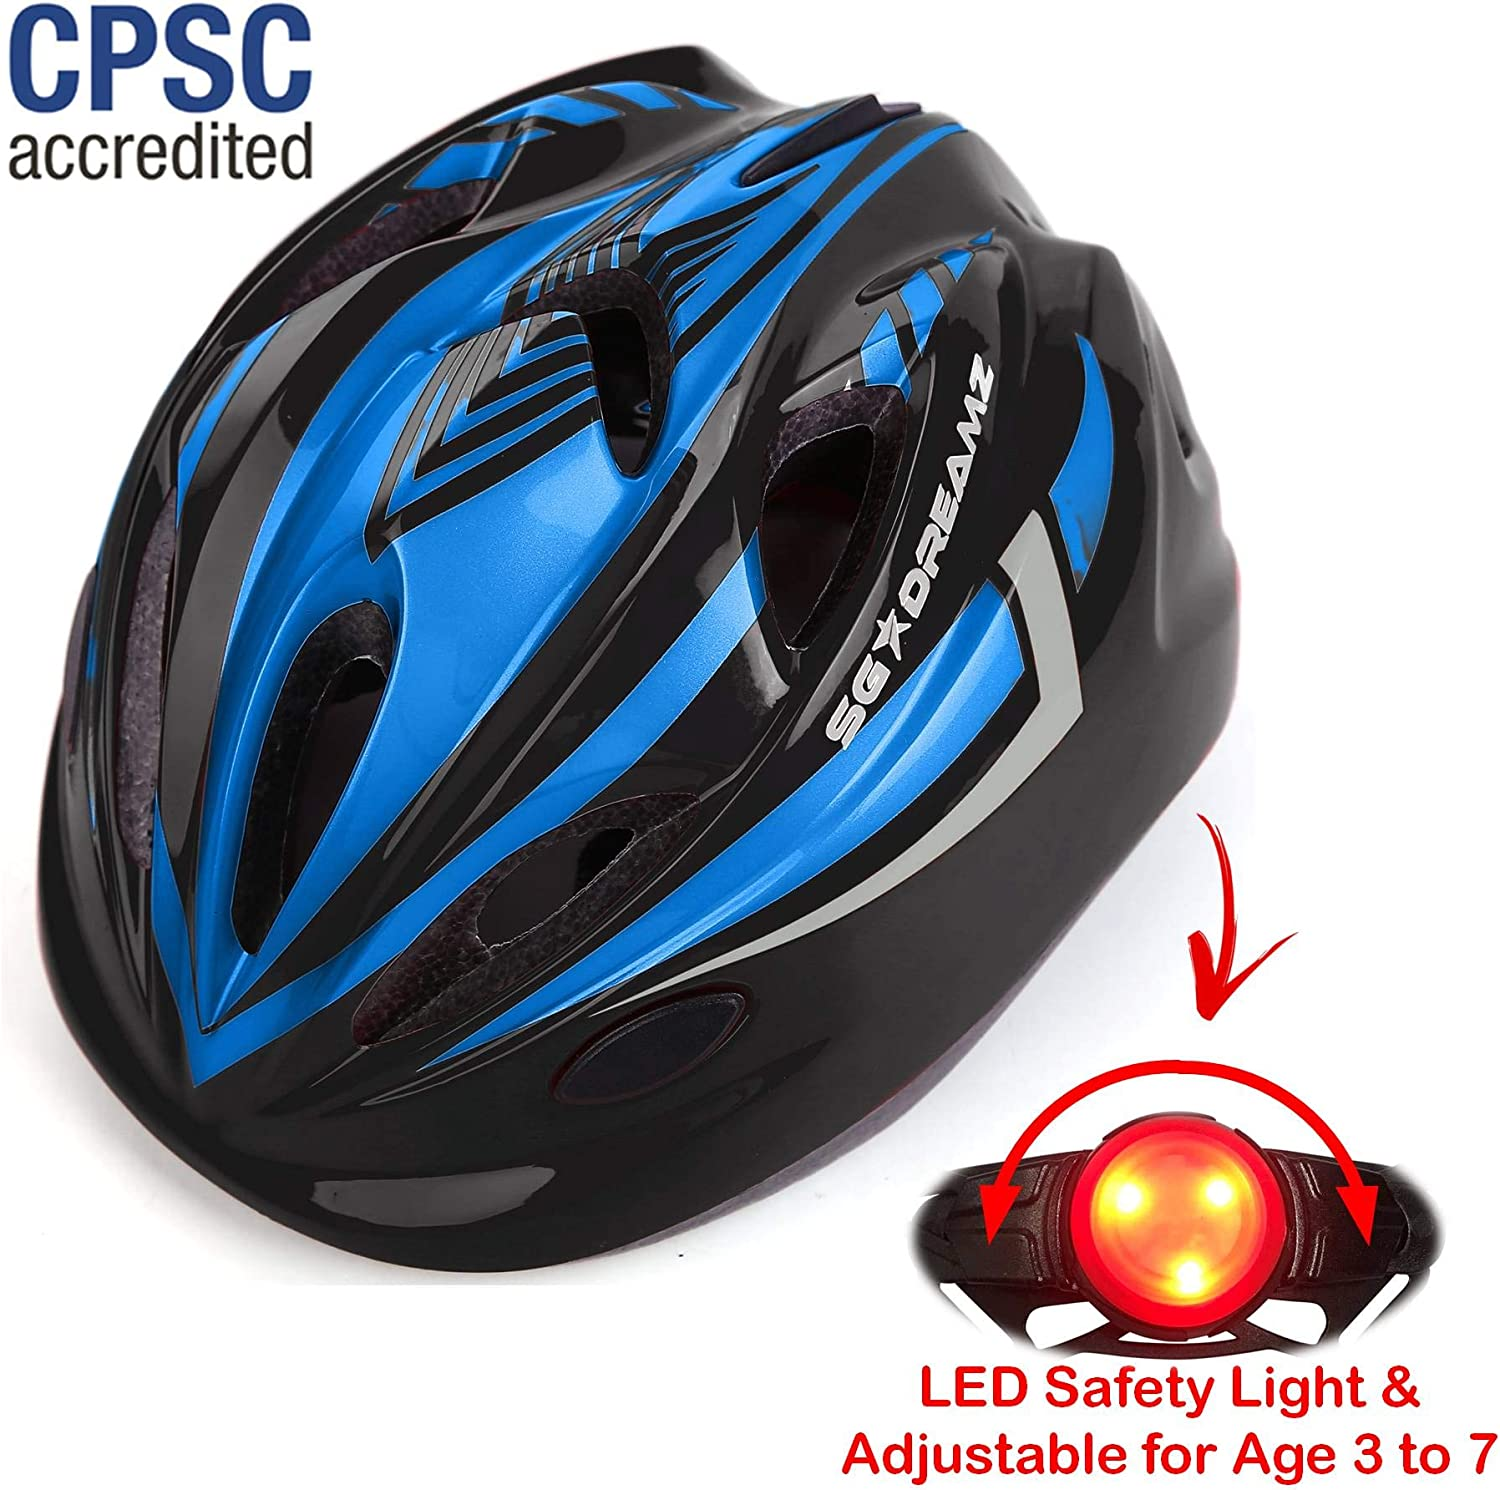 Kids Bike Helmet Adjustable from Toddler to Youth Size, Ages 3 to 7 – Durable Kid Bicycle Helmets with Fun Racing Design Boys and Girls Will Love – CSPC Certified for Safety